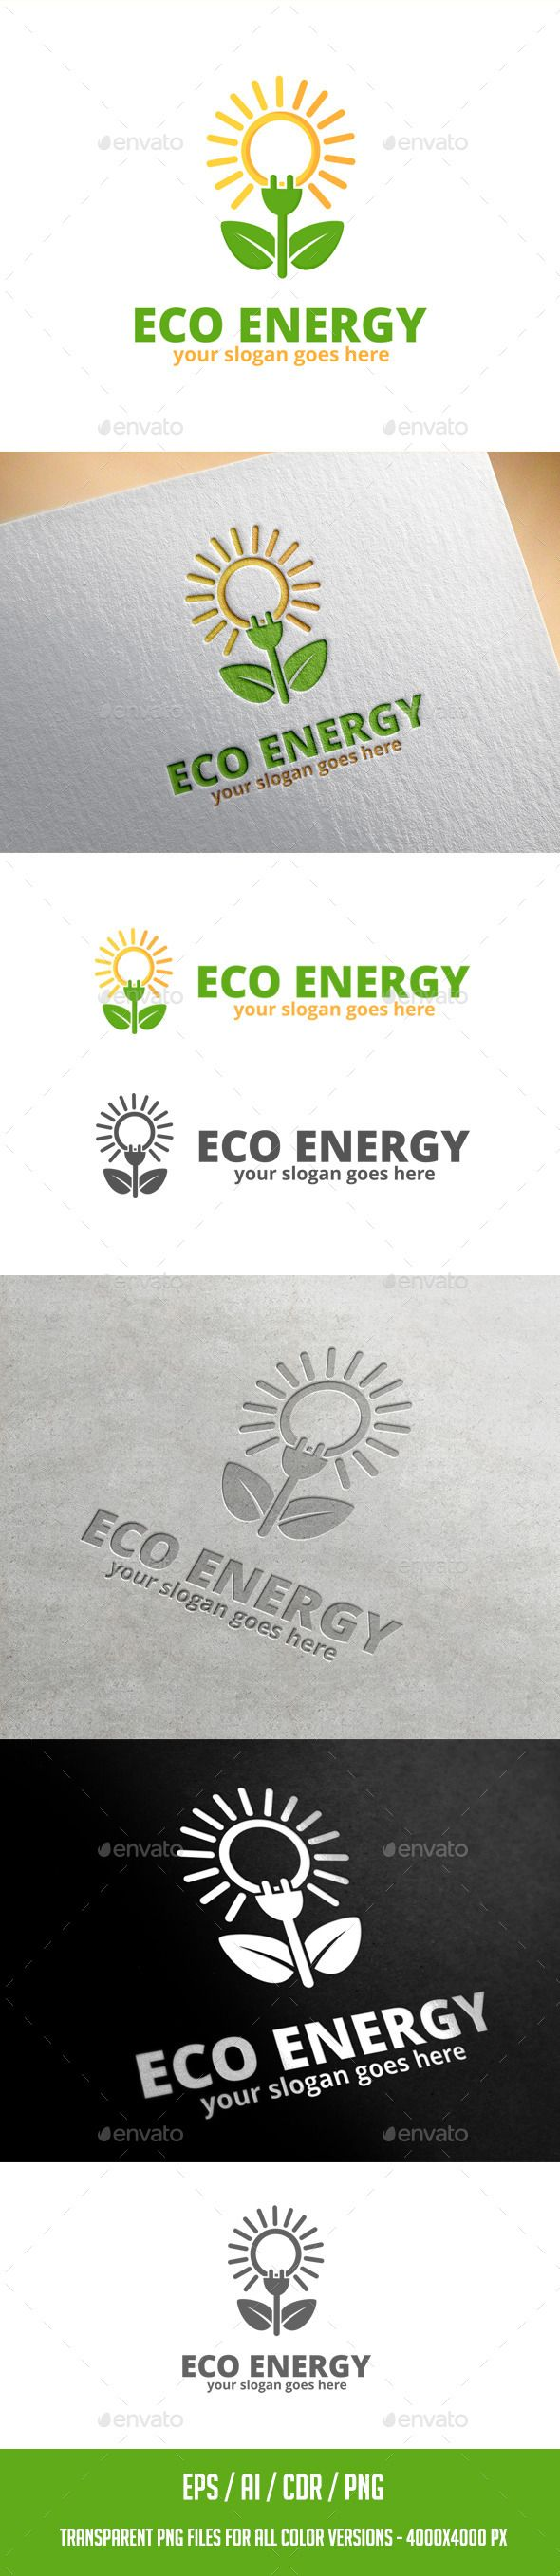 Eco Energy - Logo Design Template Vector #logotype Download it here: http://graphicriver.net/item/eco-energy-logo-template-/11656329?s_rank=762?ref=nesto